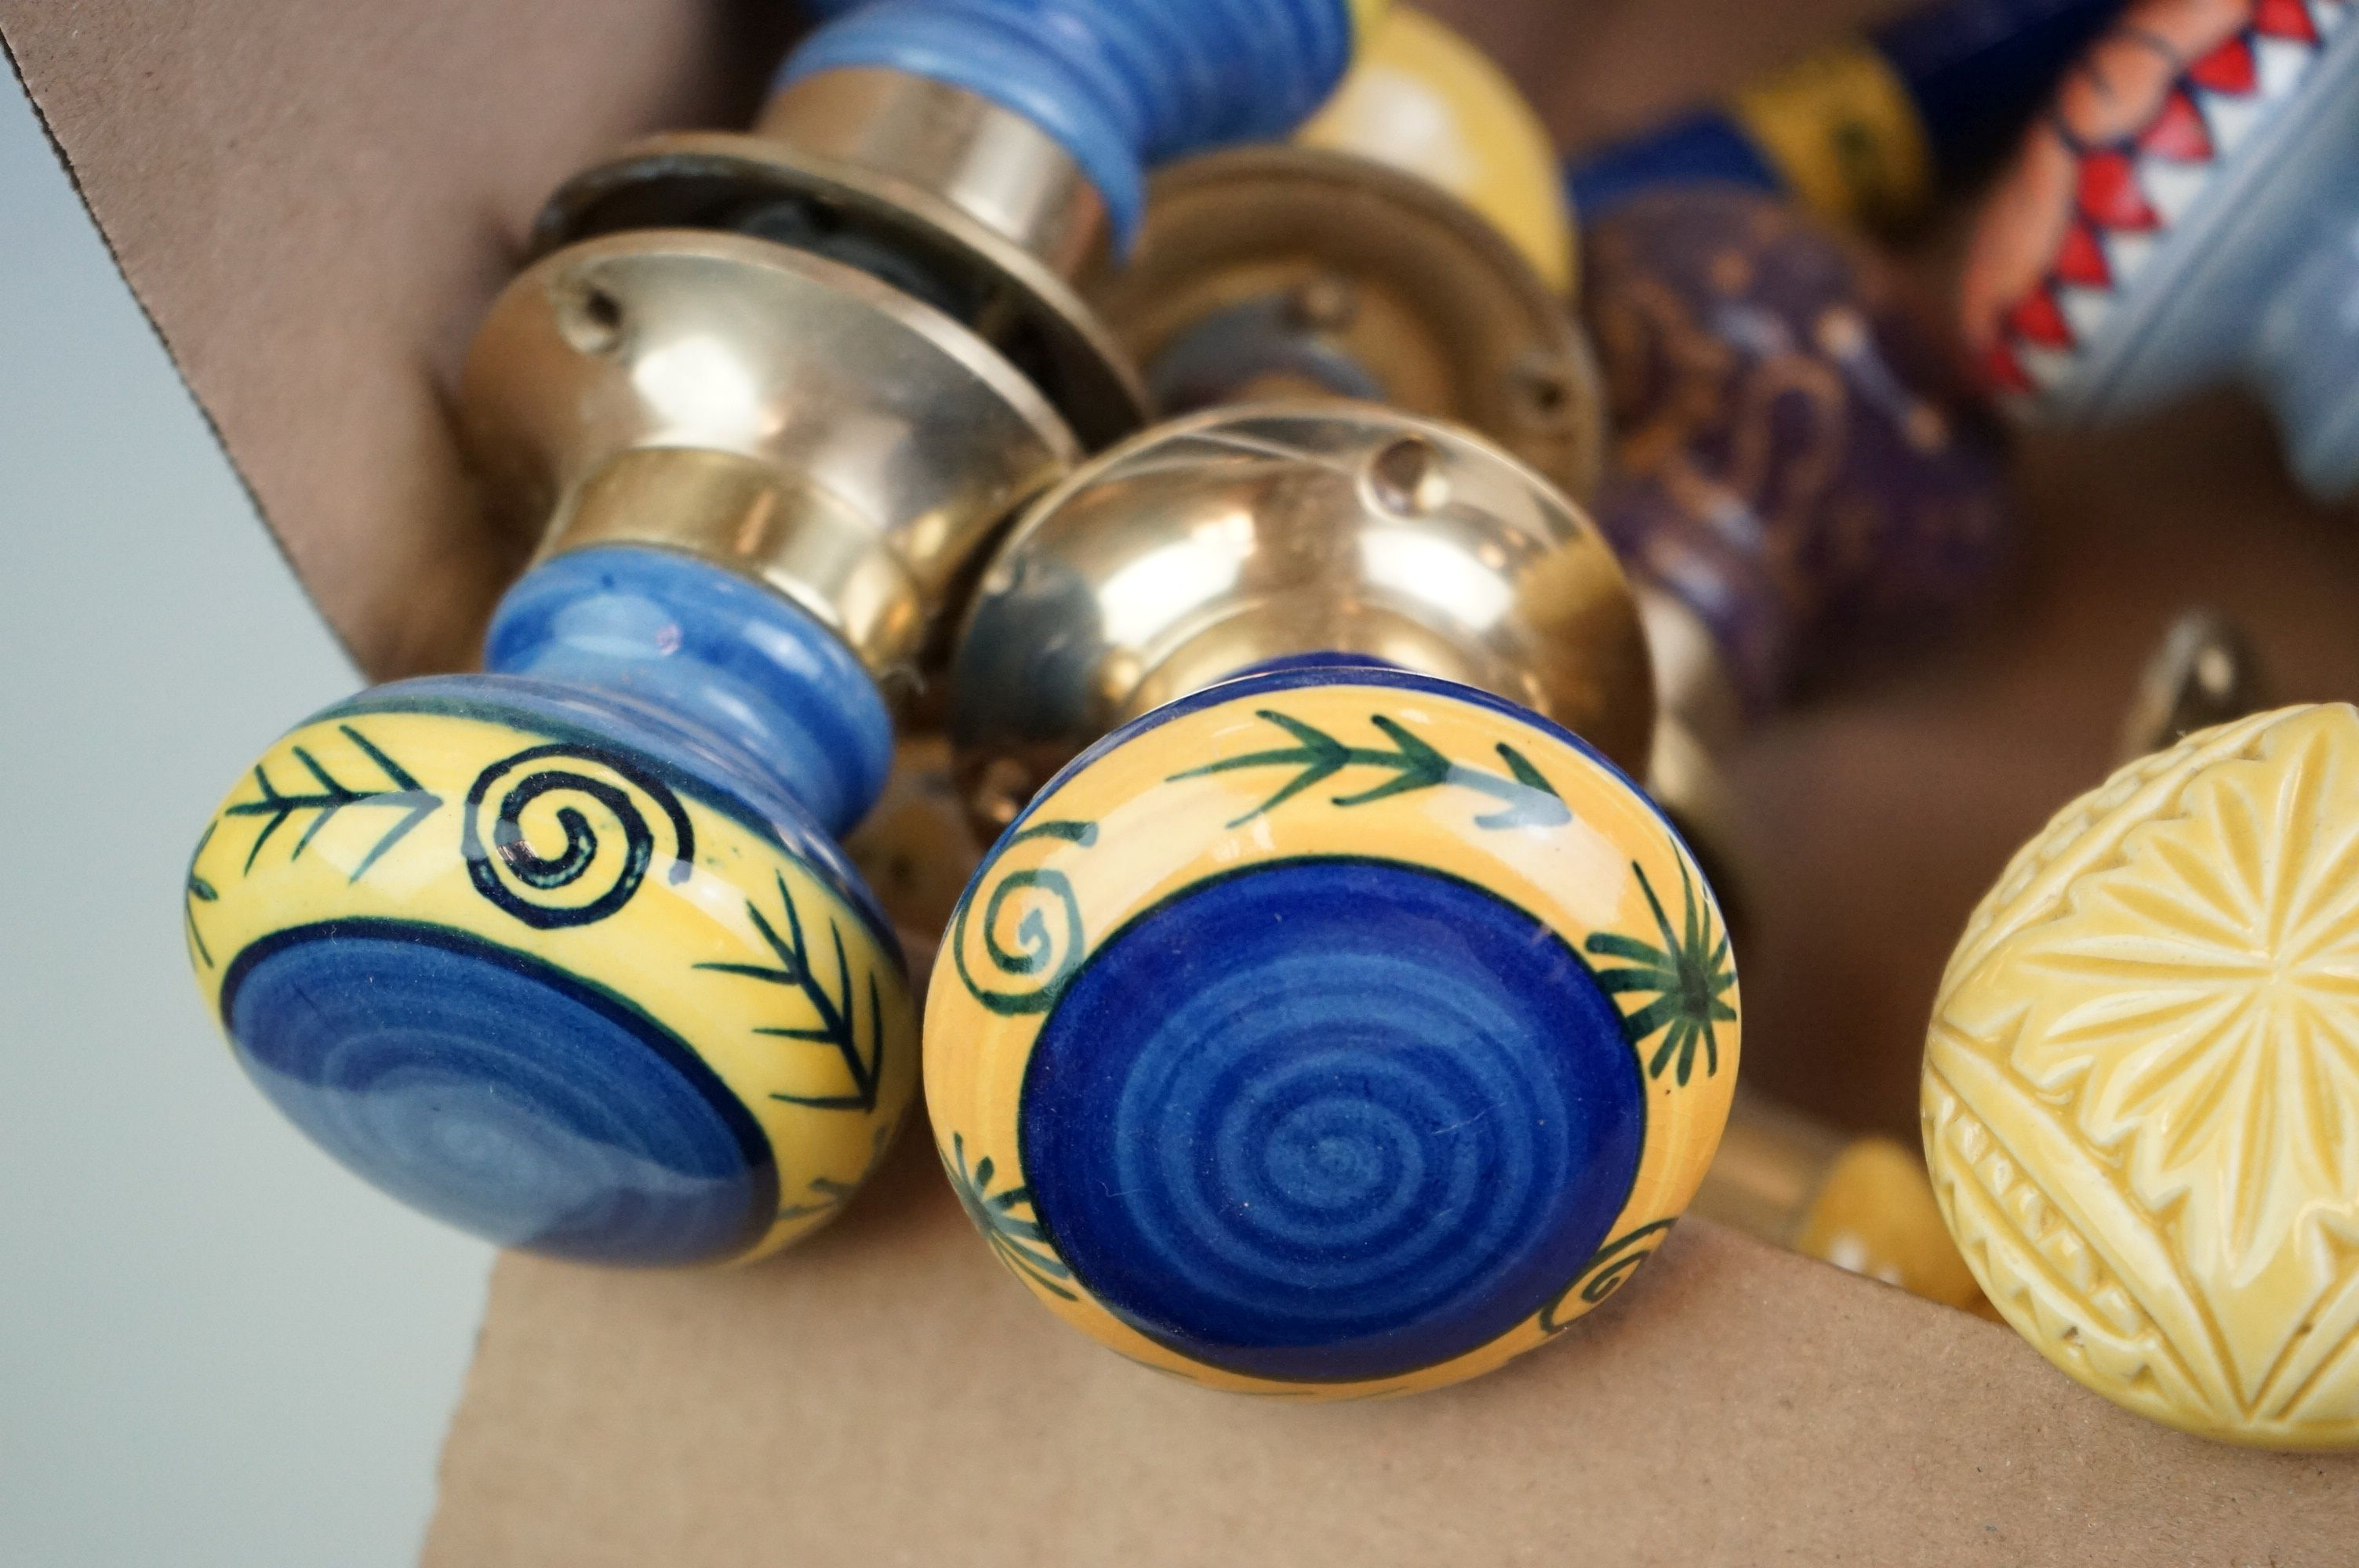 A collection of vintage ceramic door knobs. - Image 7 of 7